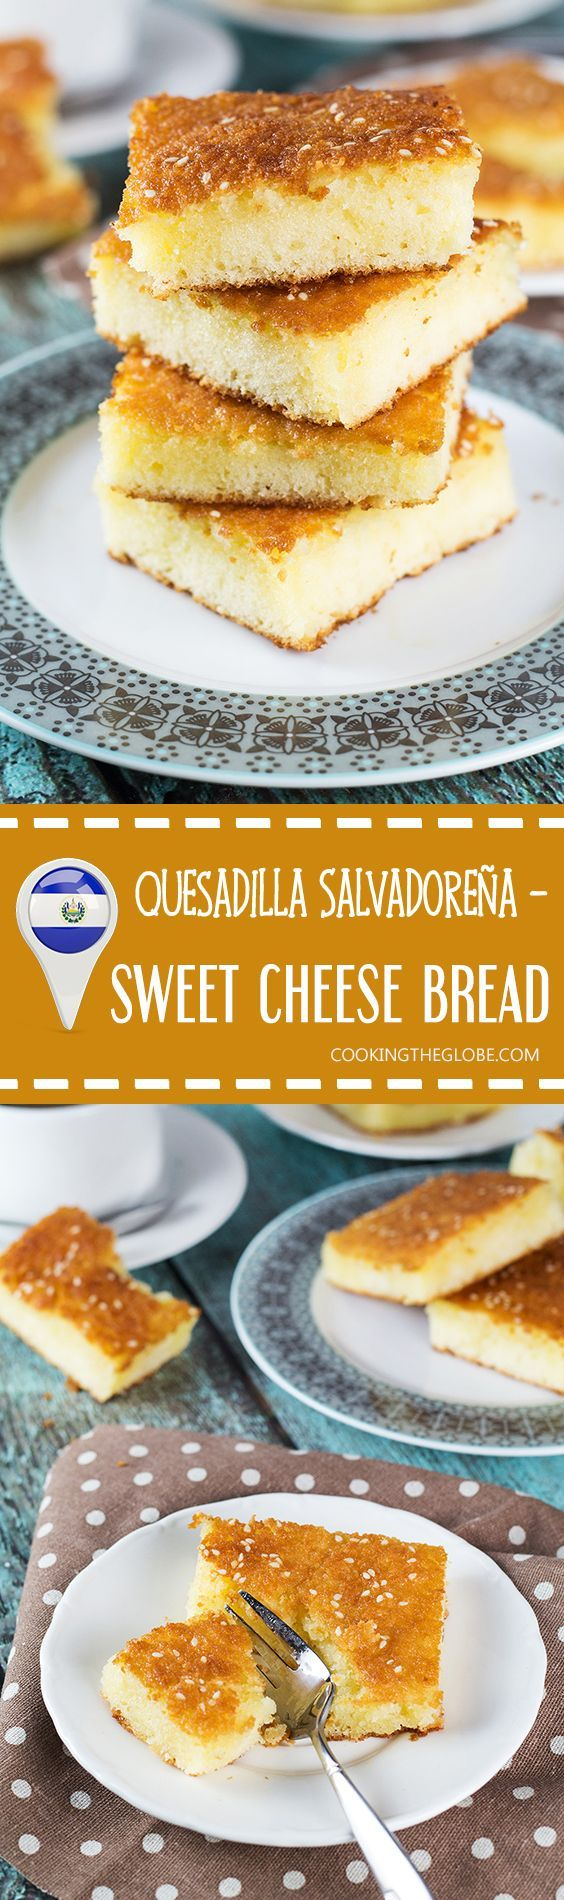 Quesadilla Salvadoreña is not your ordinary quesadilla. This one is a dessert! A rich and crazy delicious sweet cheese bread / pound cake from El Salvador. So good! | cookingtheglobe.com